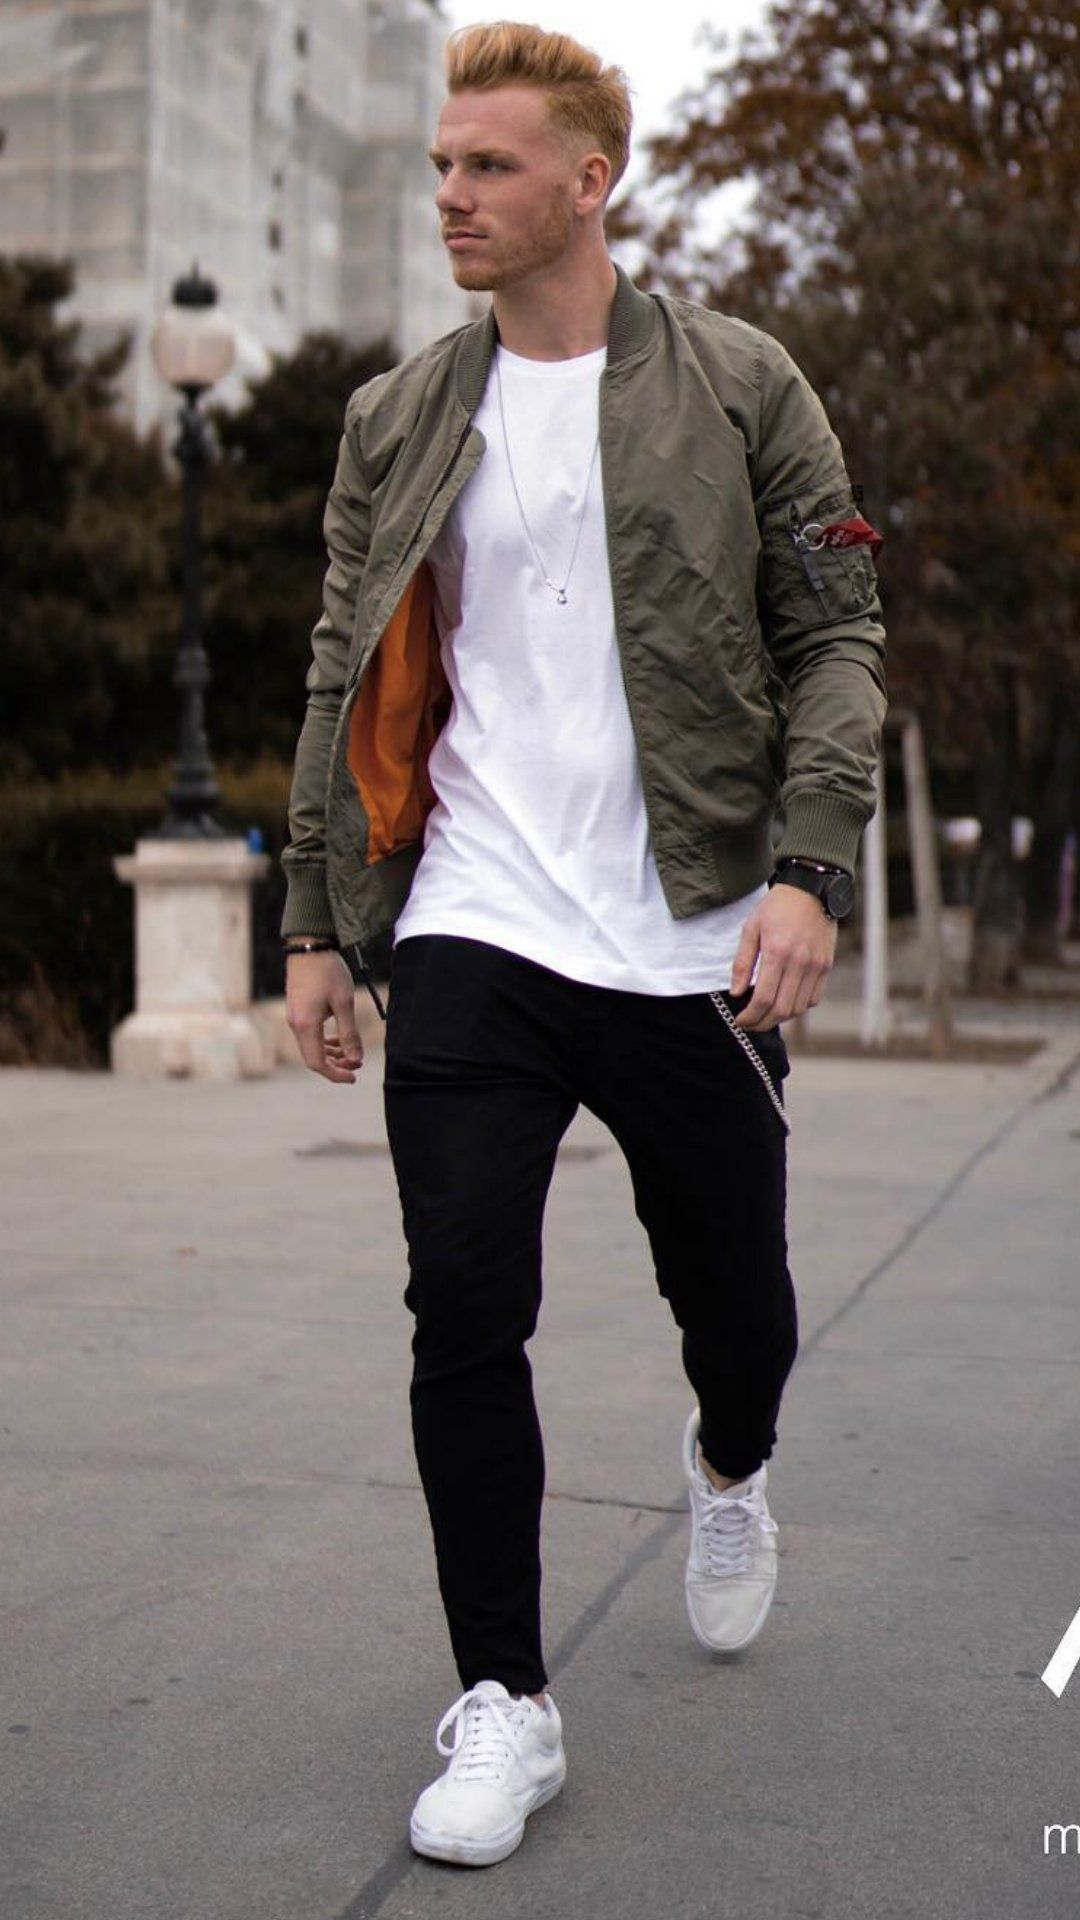 5 Bomber Jacket Outfits To Wear Every Fall Weekends Bomber Jacket Outfit Mens Outfits Men Bomber Jacket Outfit [ 1920 x 1080 Pixel ]